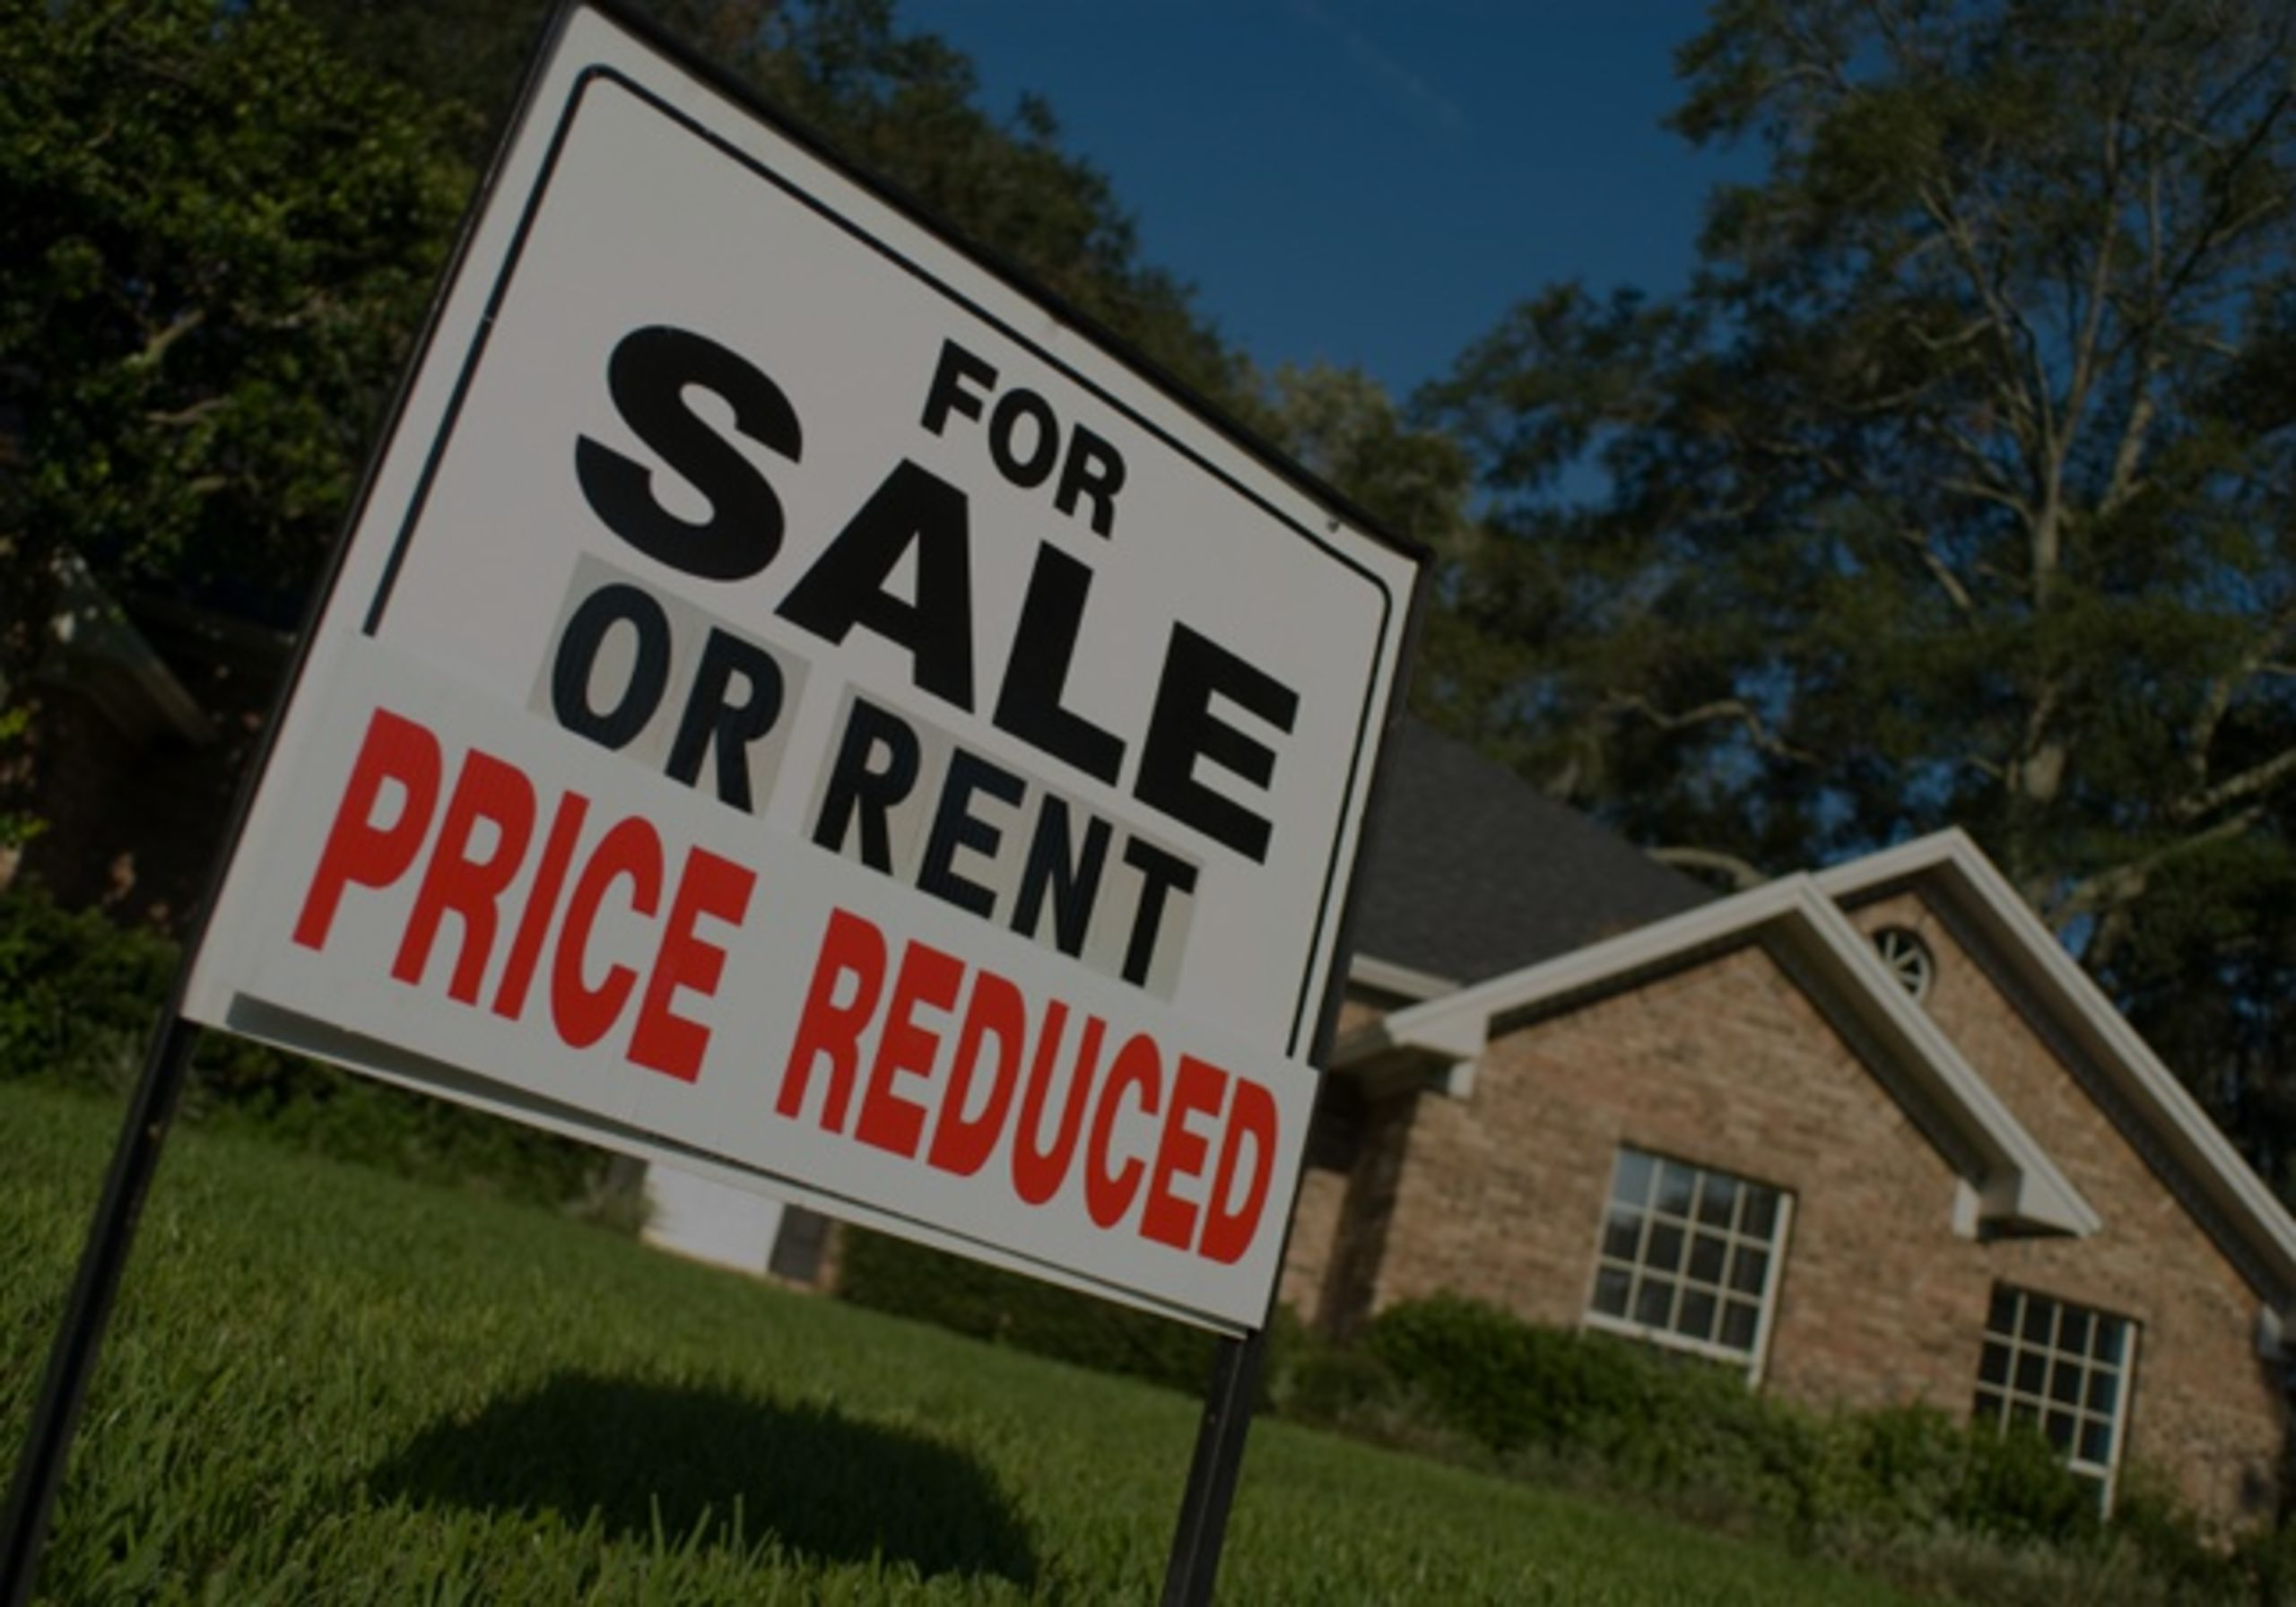 3 Factors To Help Decide Whether To Rent Or Purchase A Home